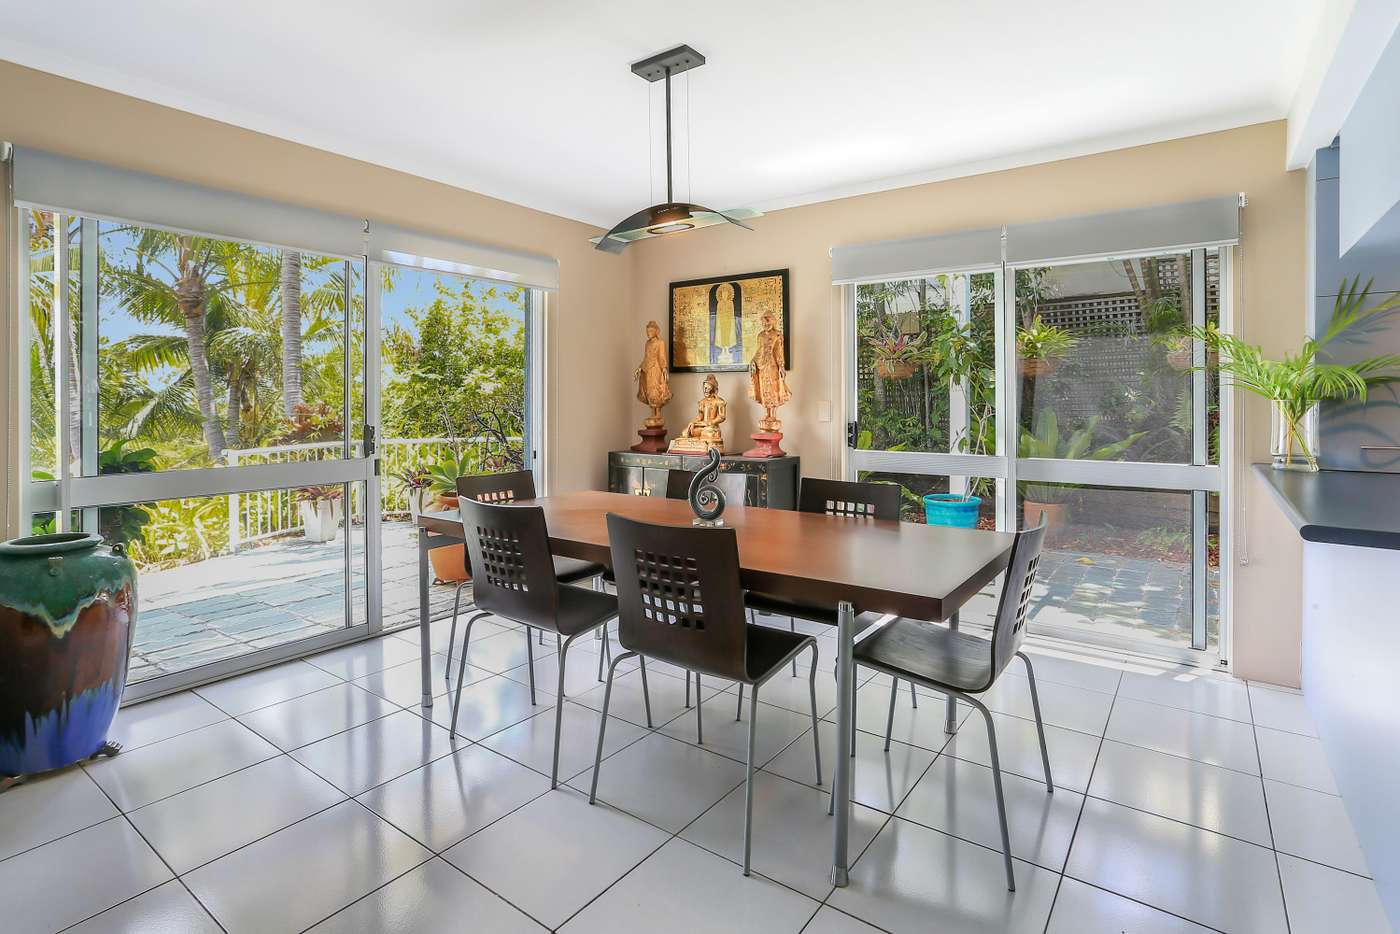 Fifth view of Homely house listing, 10 Arkana Drive, Noosa Heads QLD 4567